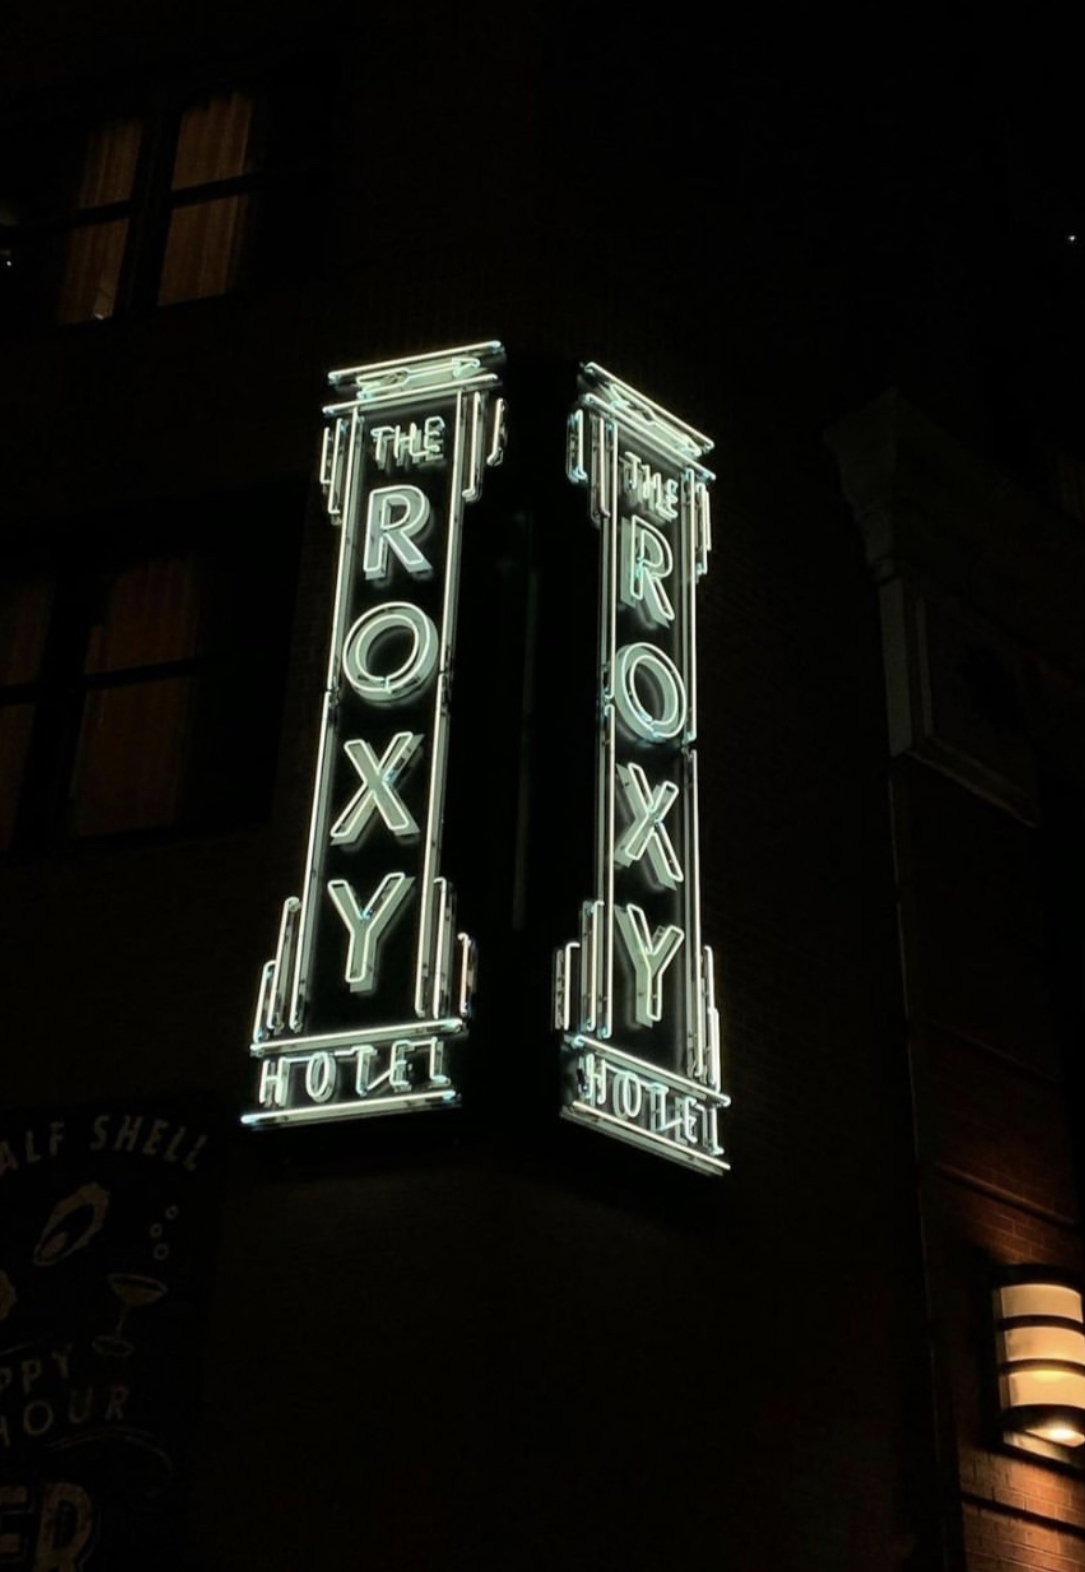 Meet Me At The Roxy